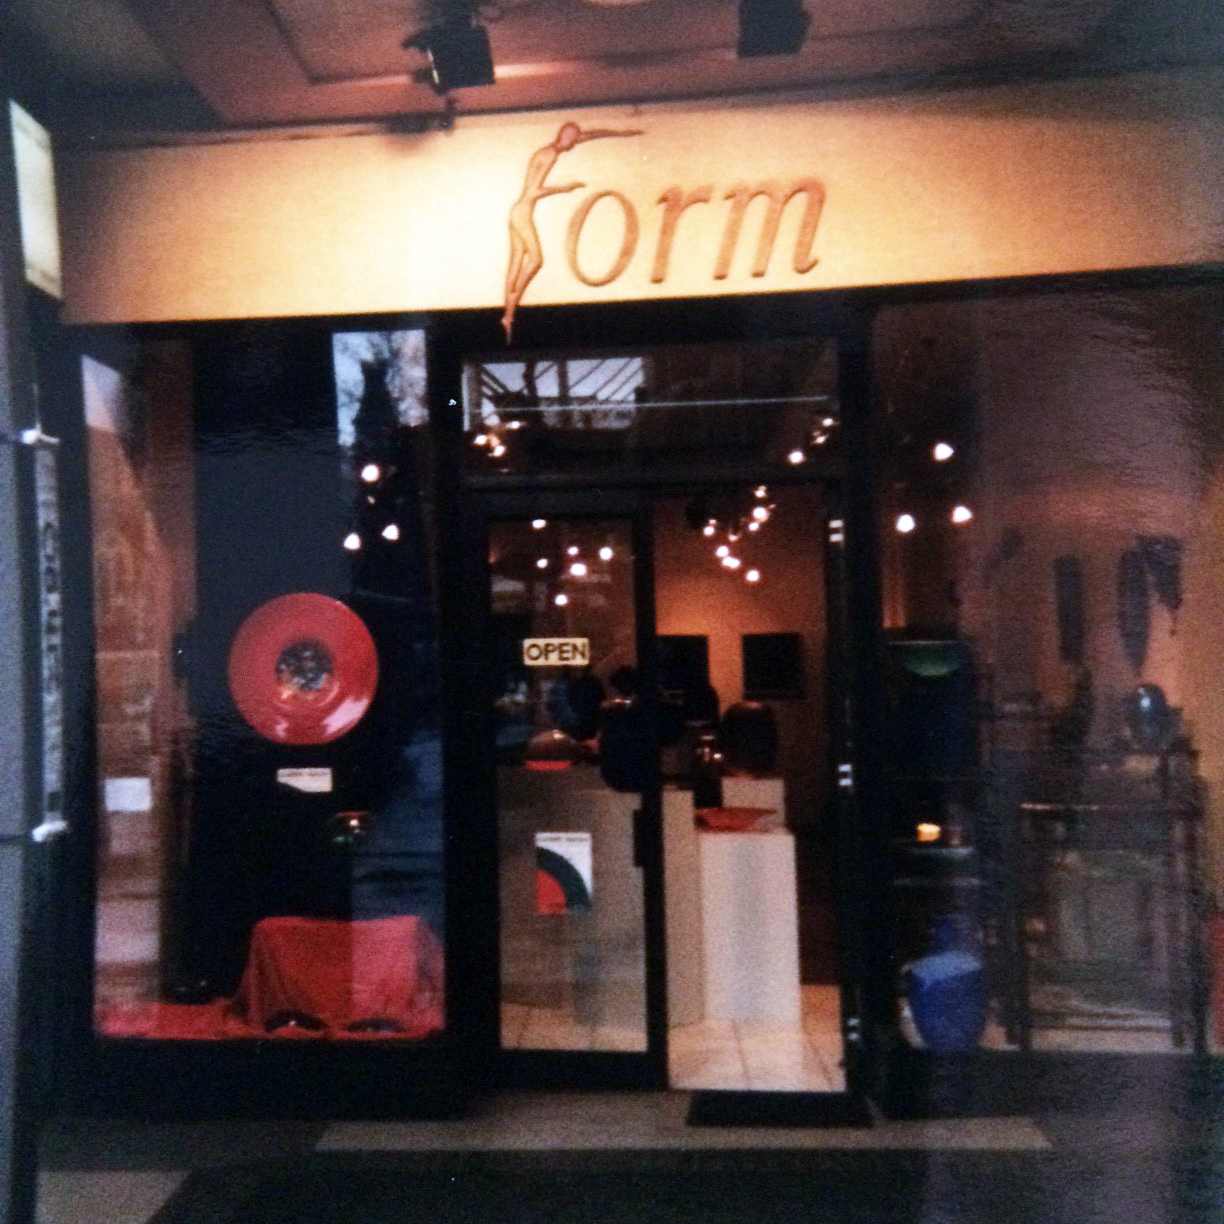 - Form Gallery exists to showcase and retail the work of New Zealand contemporary object artists.Form Gallery was established in 1993 by Koji Miyazaki in Christchurch's Cathedral Square, New Zealand. During the 10 years in this location locals and tourists enjoyed the unique wares the gallery had to offer and would return regularly to see new pieces. Beautiful hand-made objects in glass and ceramic, sculptural work and fine artistic jewellery could all be found in one place.